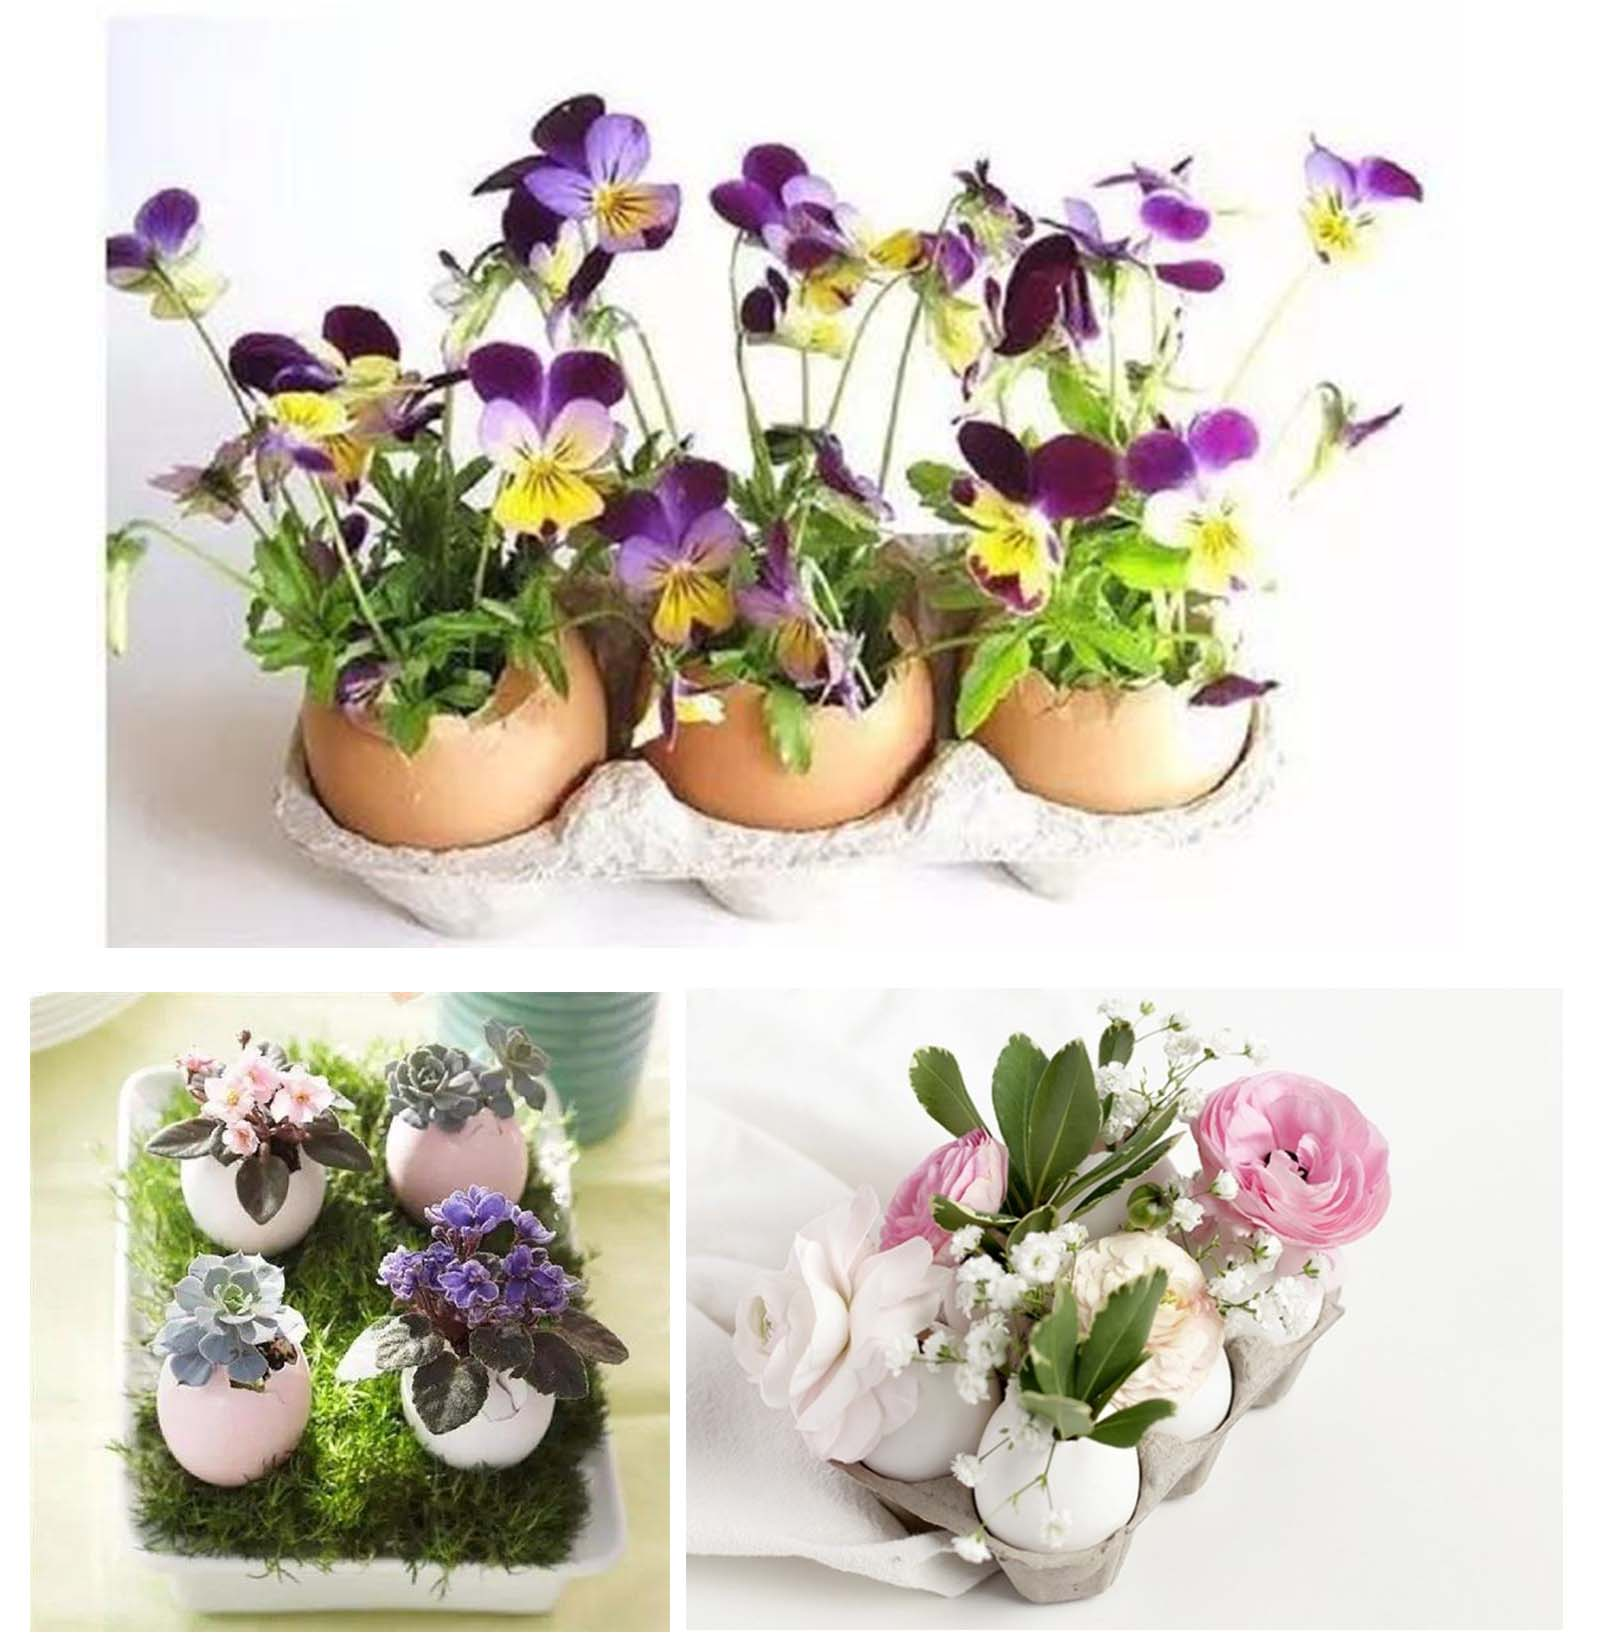 Create a colourful Easter egg garden by making more egg planters filled with different plants!